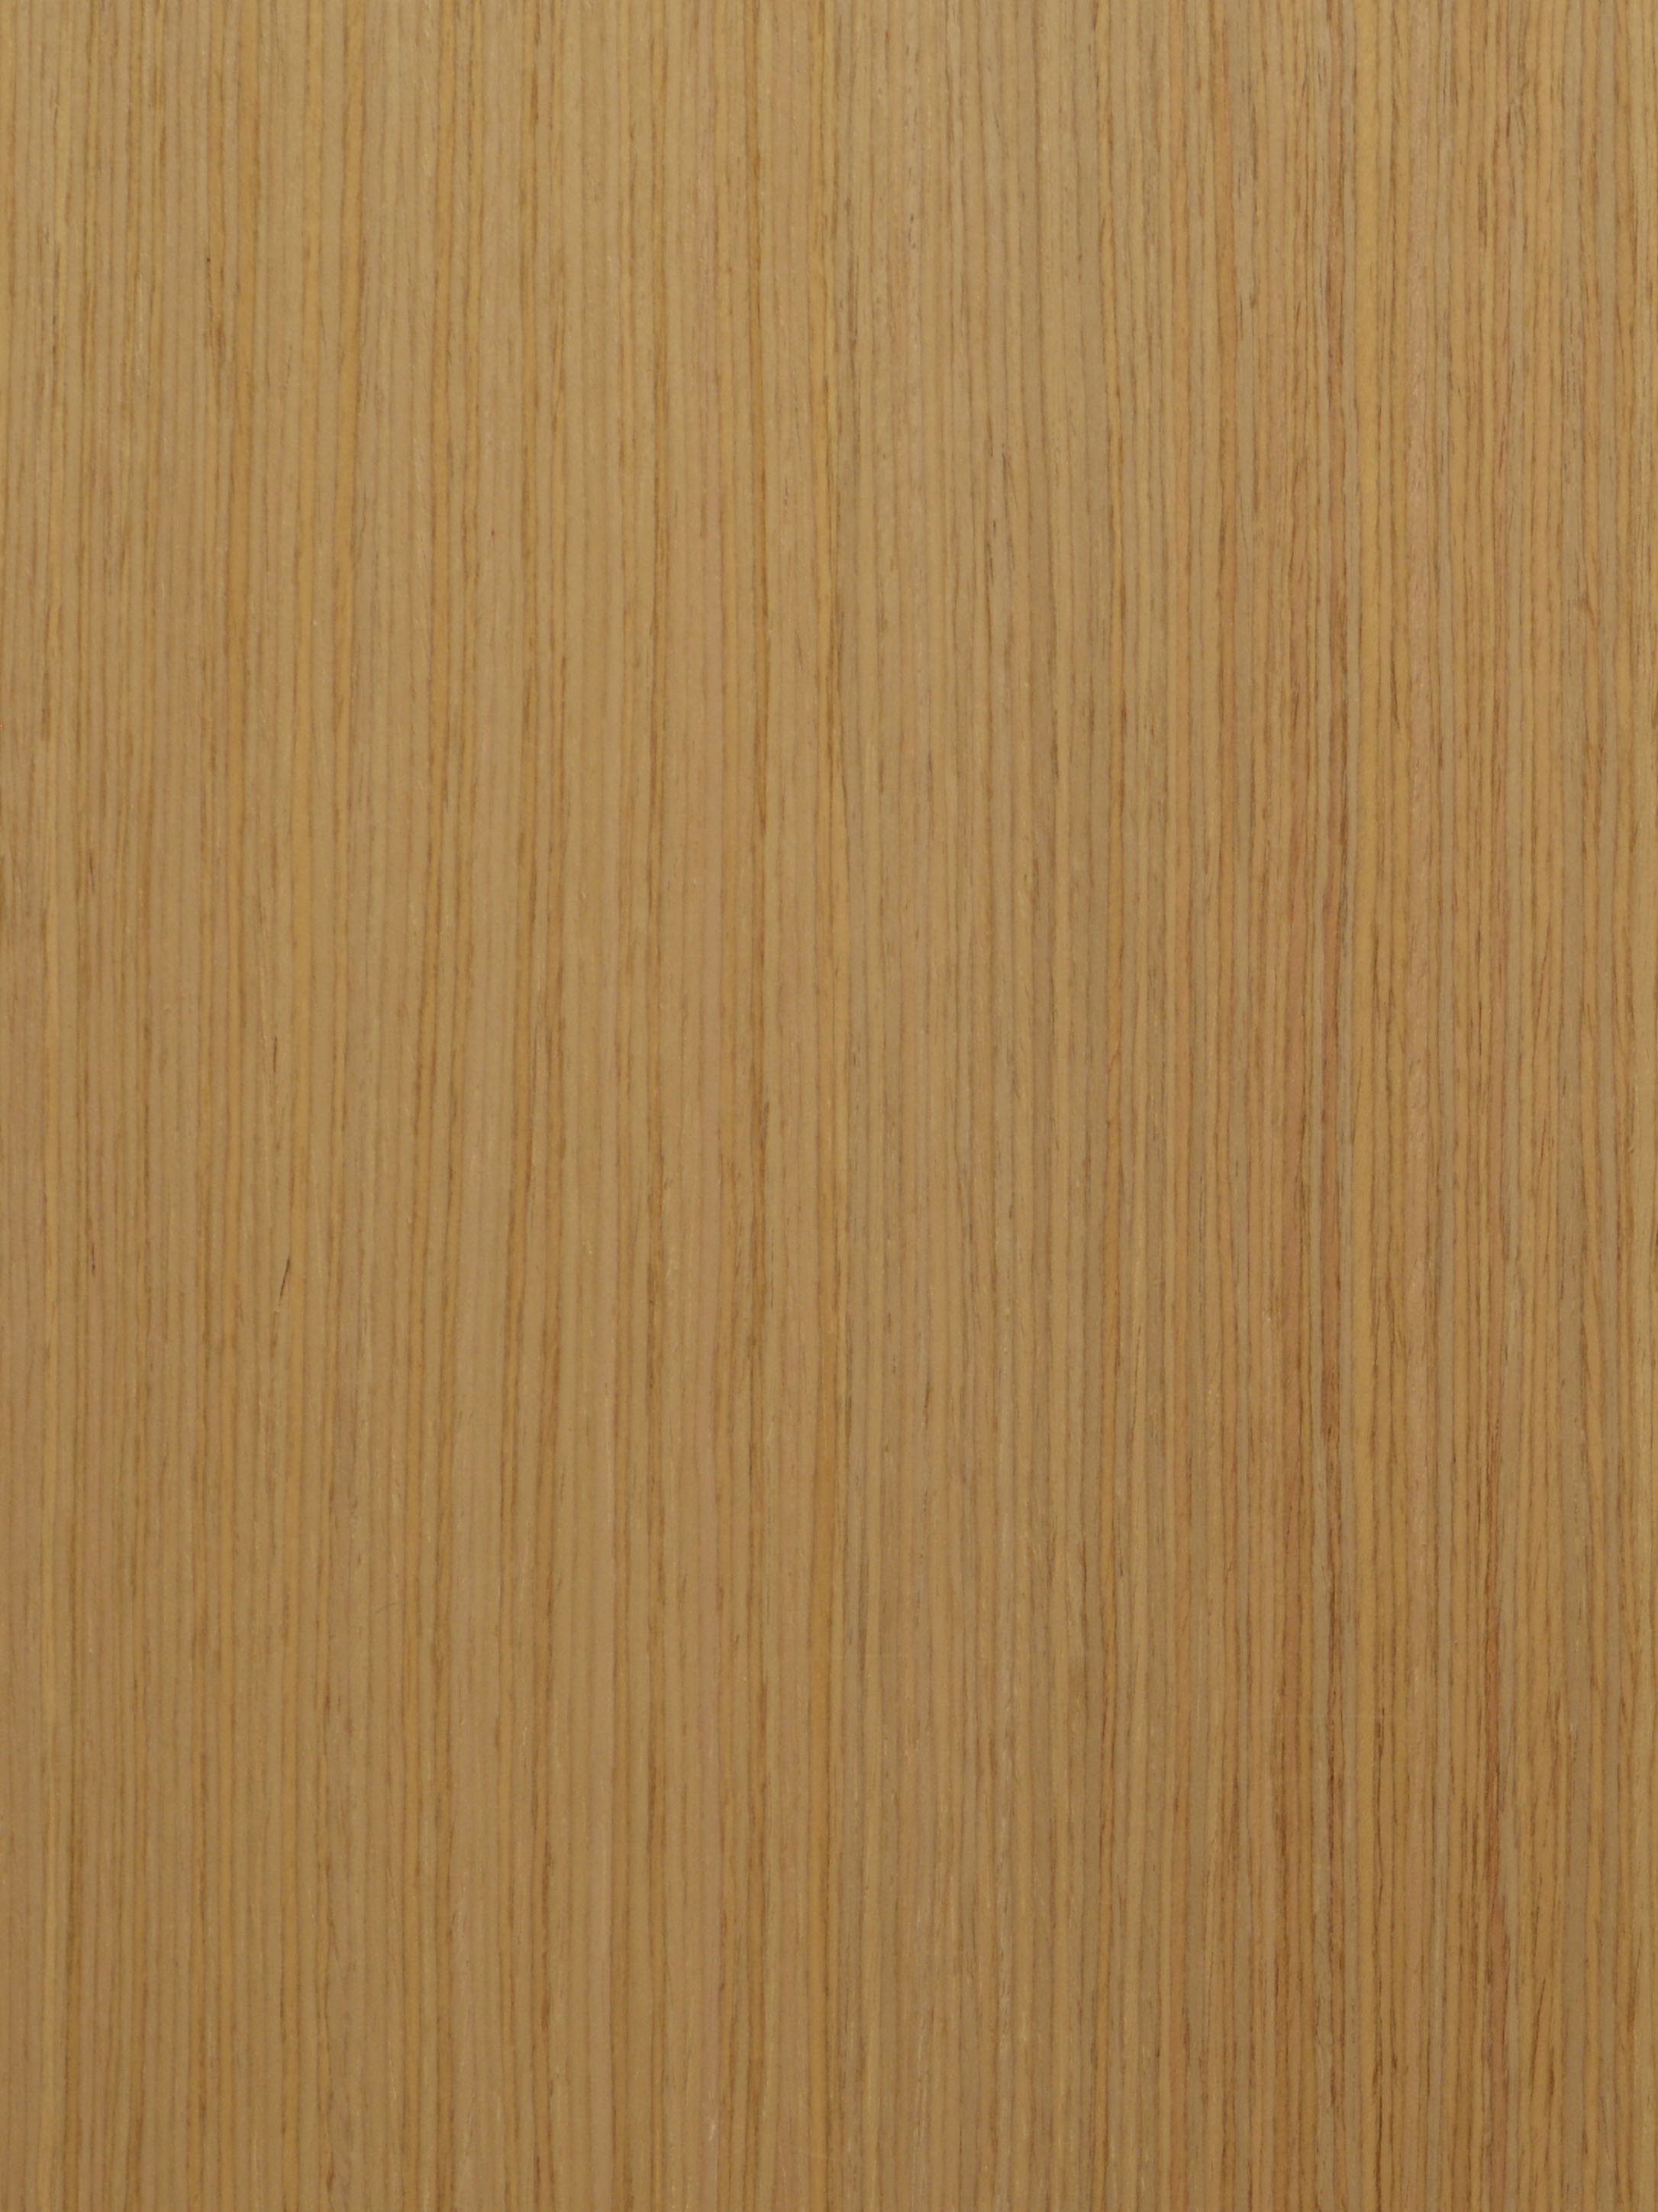 Click here for a high-res photo. & Allstyle Cabinet Doors: Recon Veneer European Oak Kitchen Cabinet Door kurilladesign.com